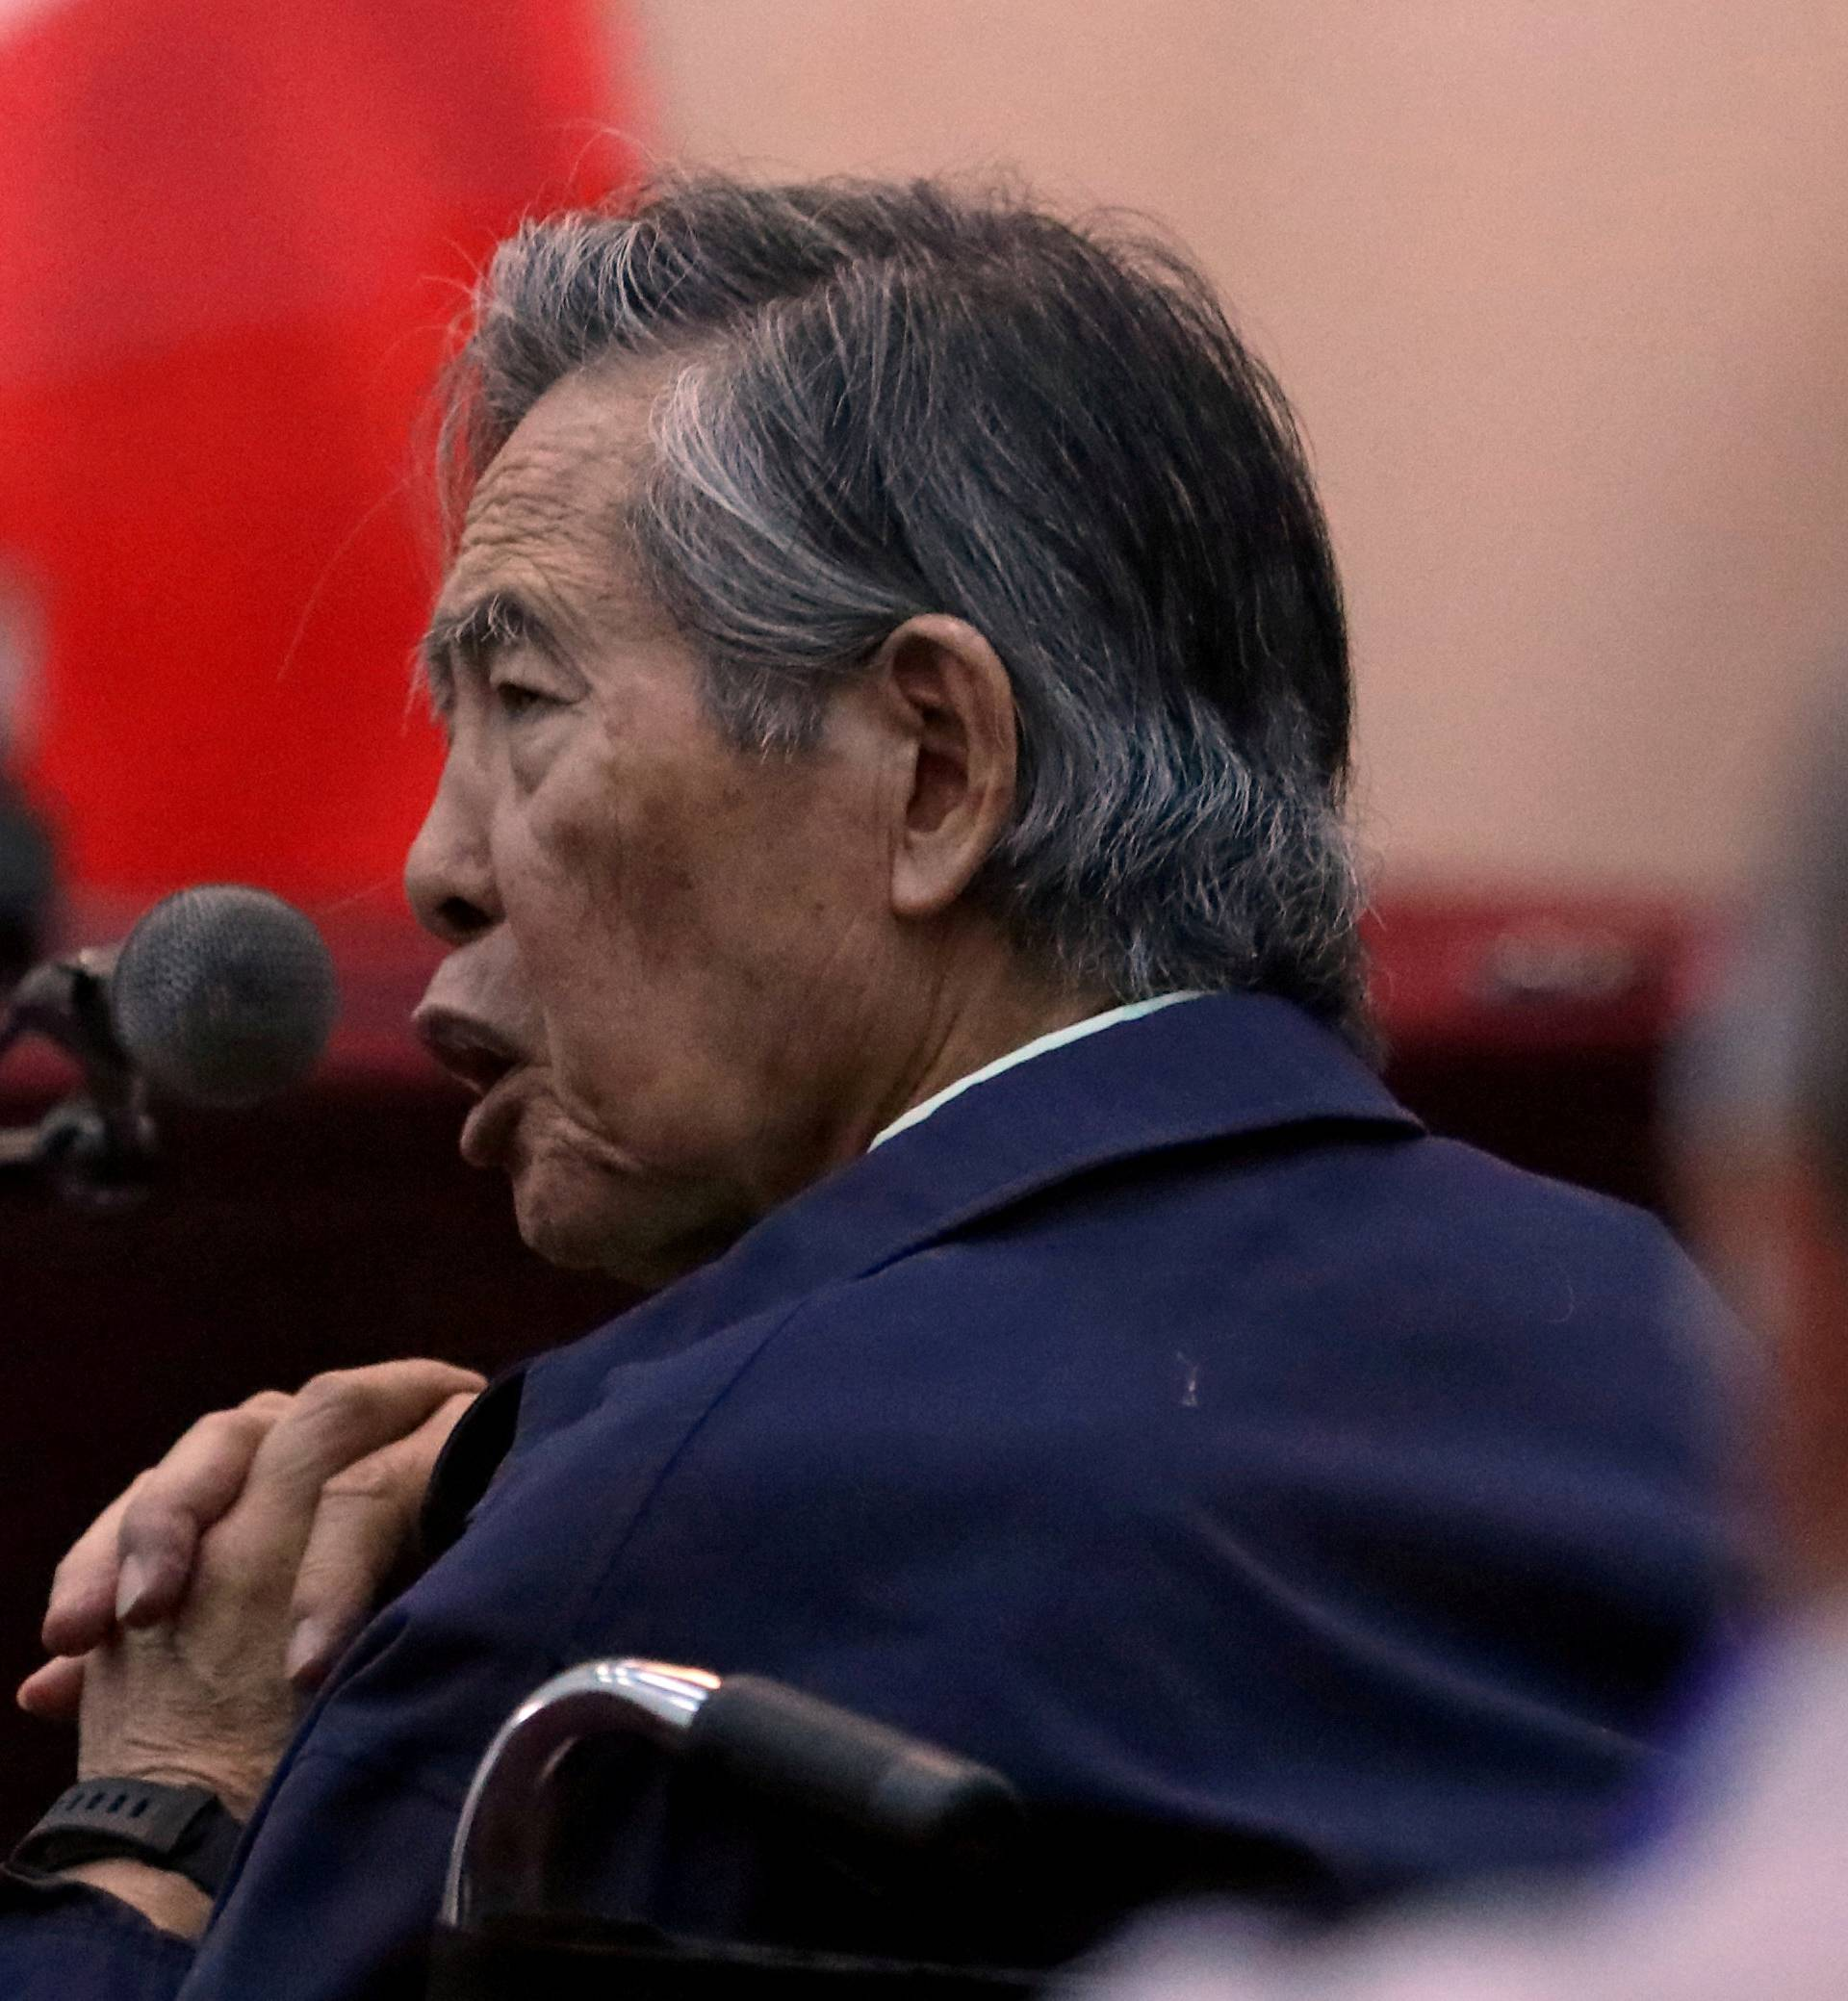 FILE PHOTO: Former President of Peru Alberto Fujimori attends a trial as a witness at the navy base in Callao